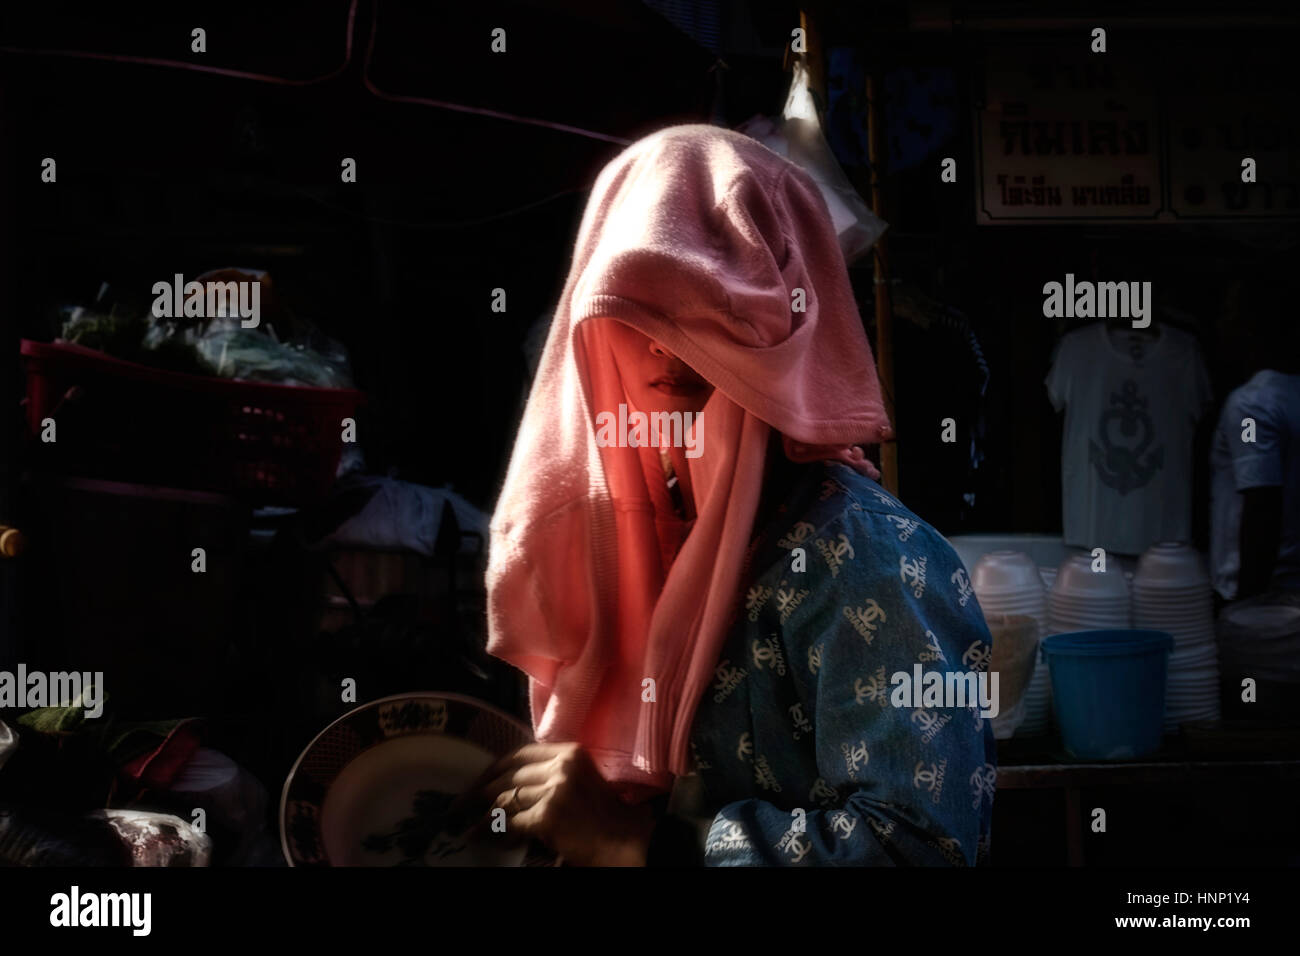 Thailand mystery woman adapting clothing as a sunshade and face sun protection. People Southeast Asia - Stock Image